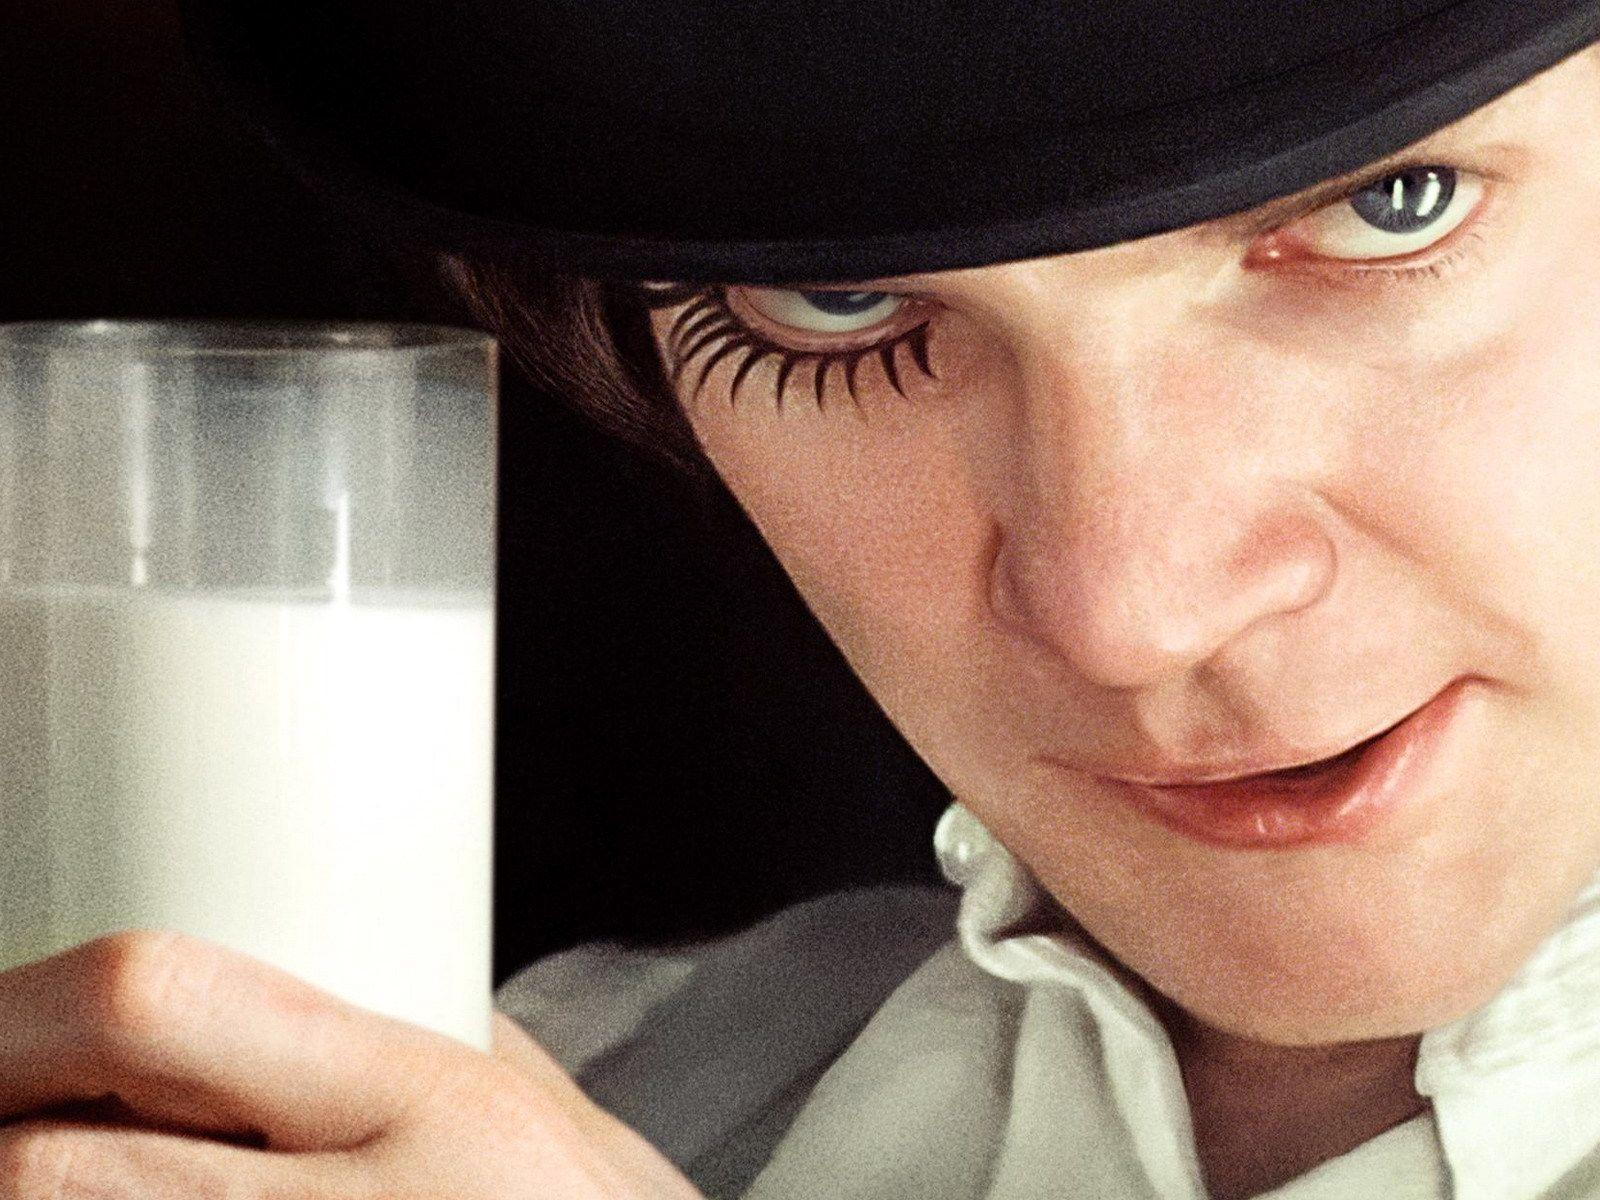 A Clockwork Orange wallpapers and images - wallpapers, pictures ...